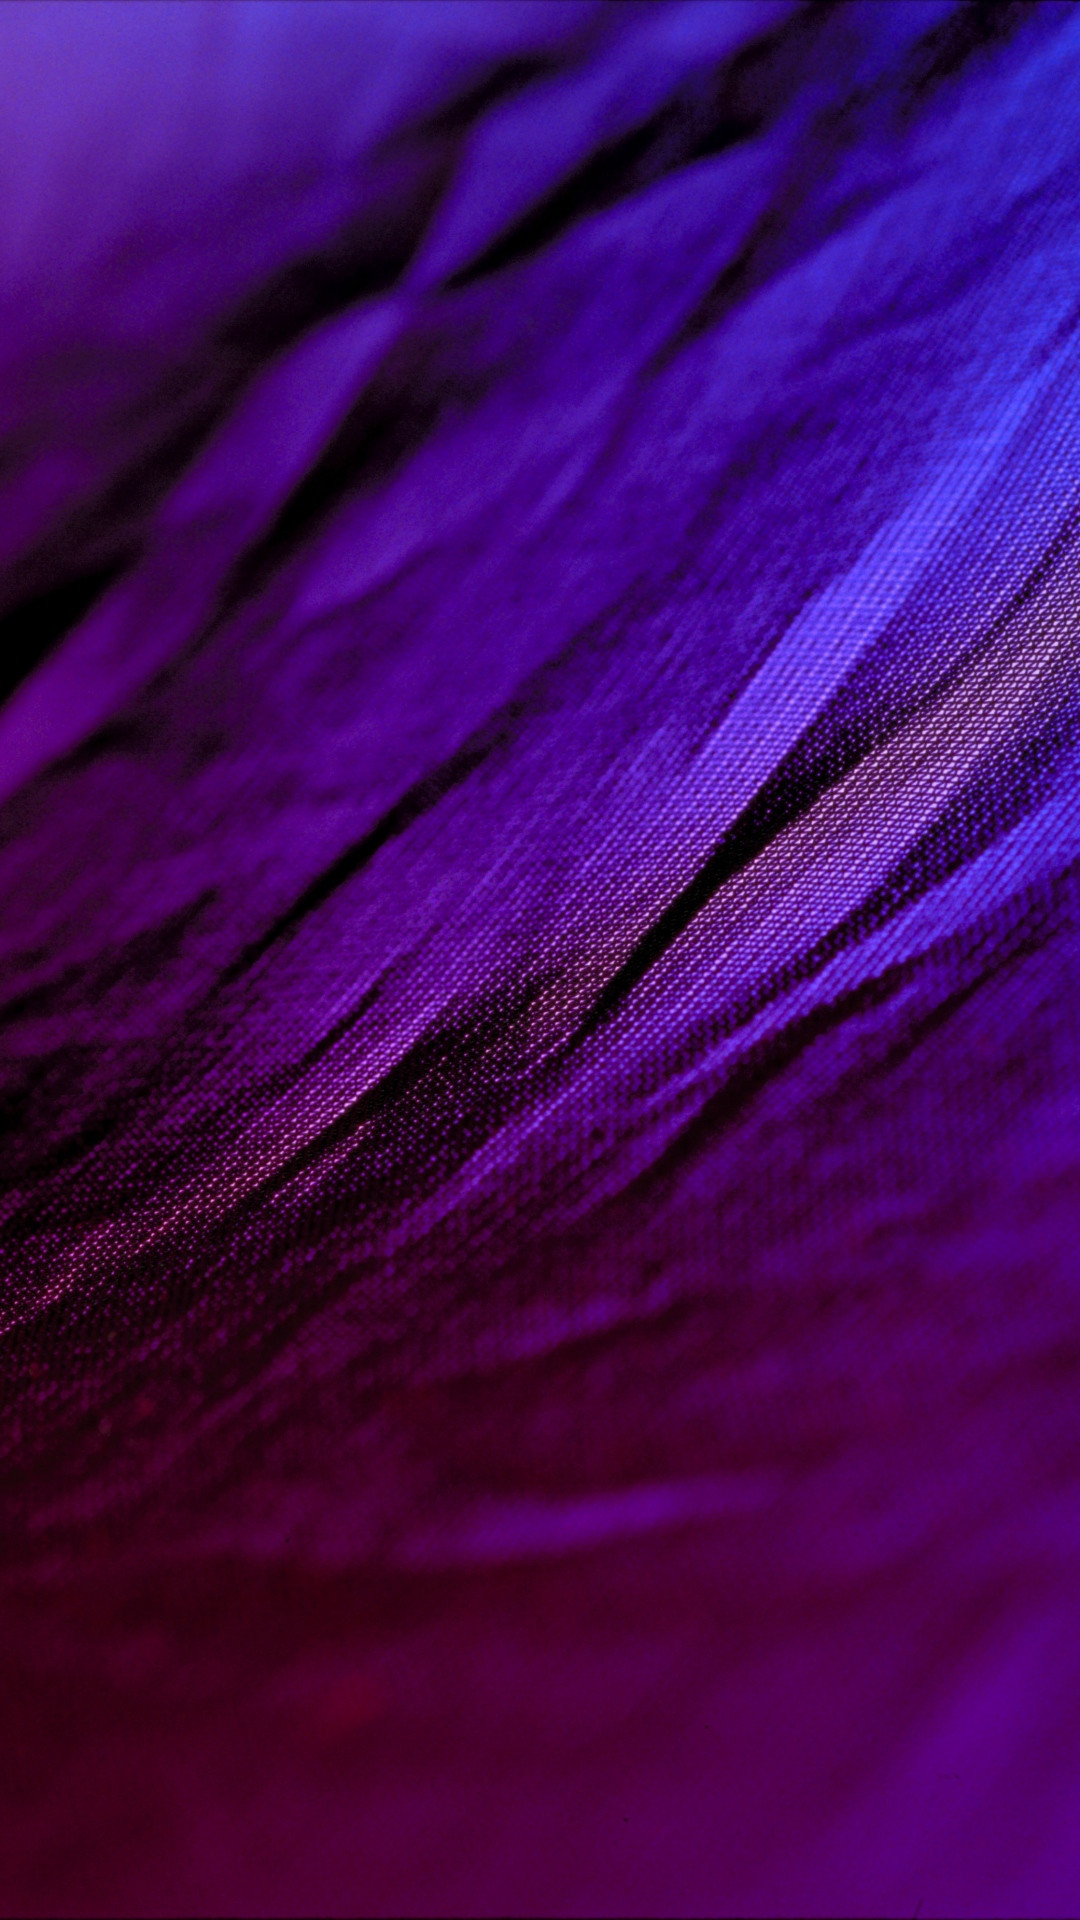 Fabric Iphone Wallpaper